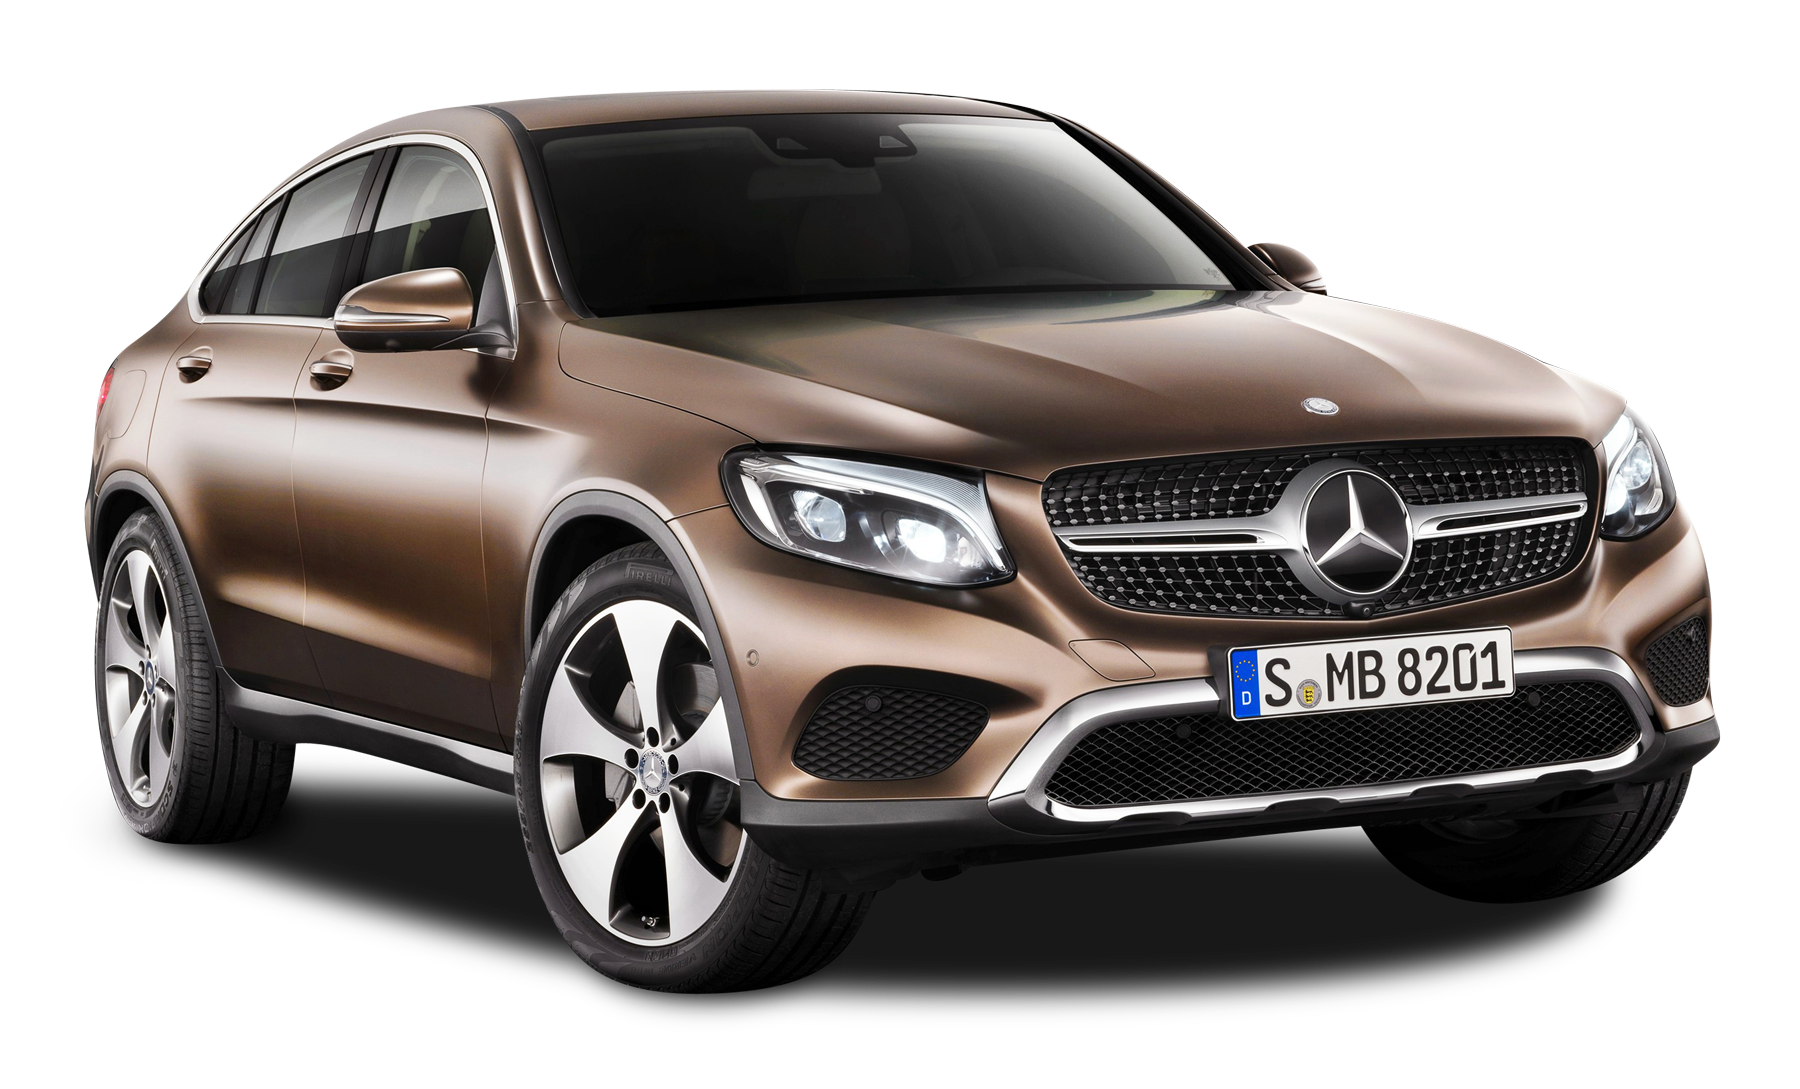 brown mercedes benz gle coupe car png image pngpix #26136